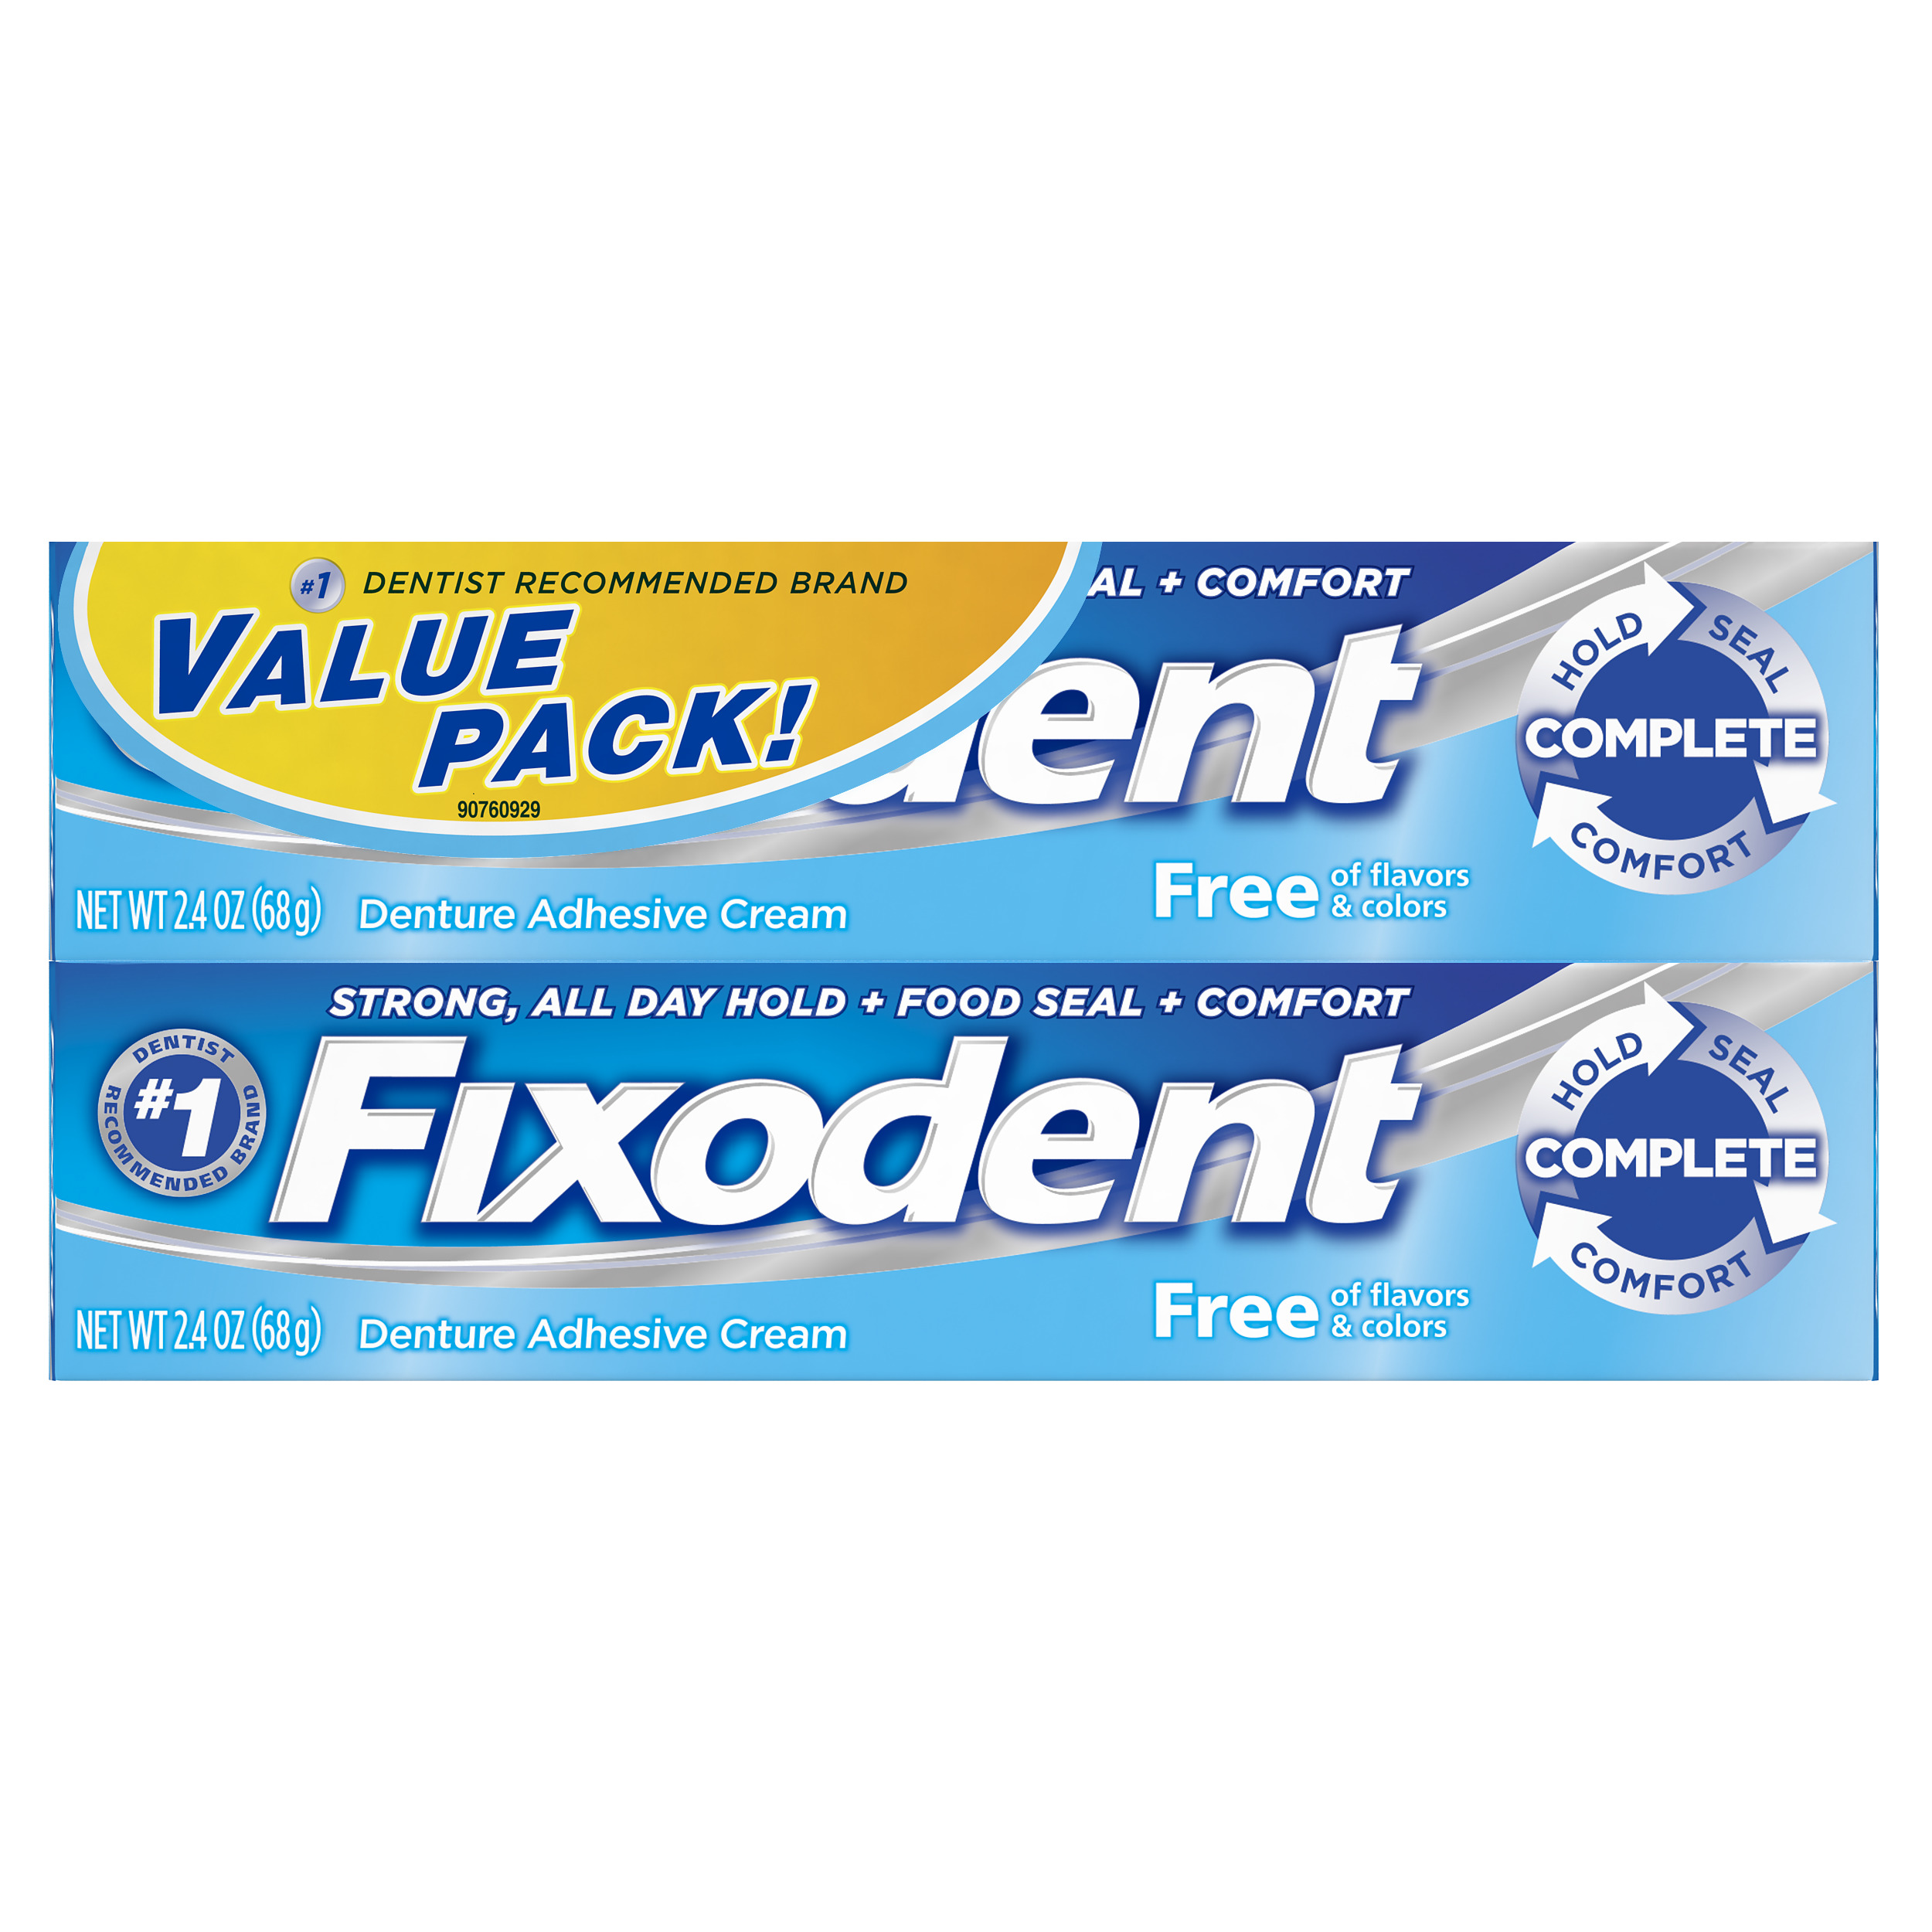 Fixodent Complete Free Denture Adhesive Cream, 2.4 oz TWIN